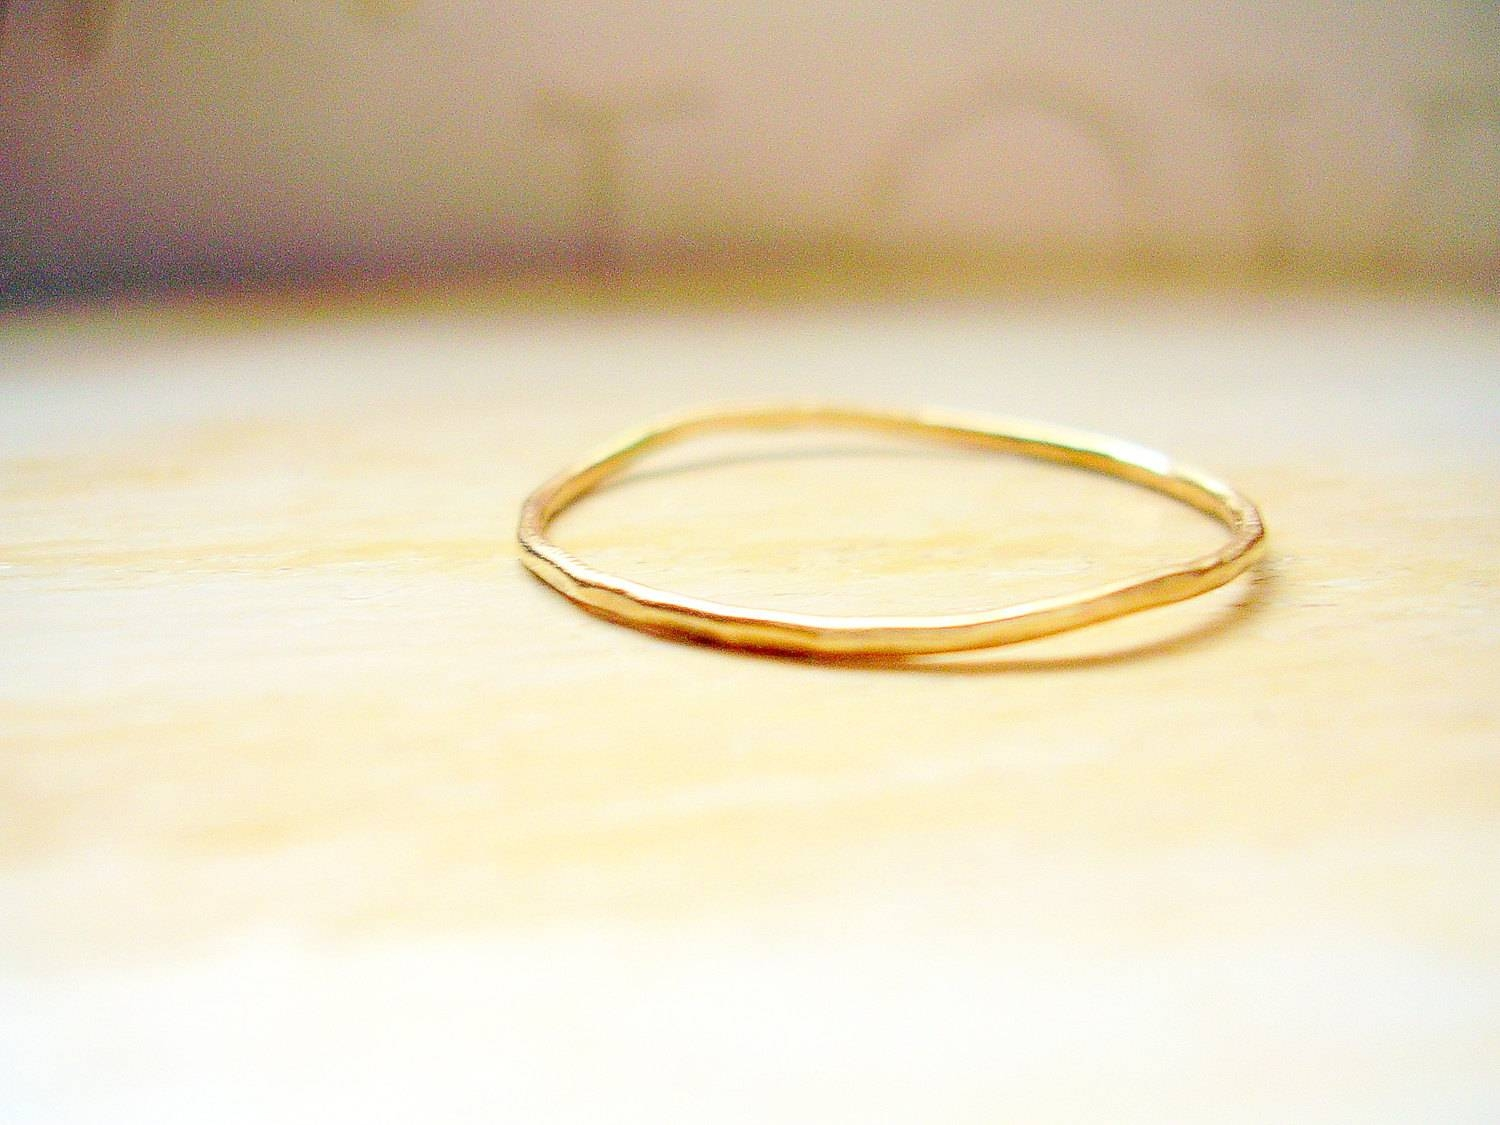 Dainty Gold Ring 14K Gold Very Thin Wedding Band Hammered & Throughout Skinny Wedding Bands (View 2 of 15)